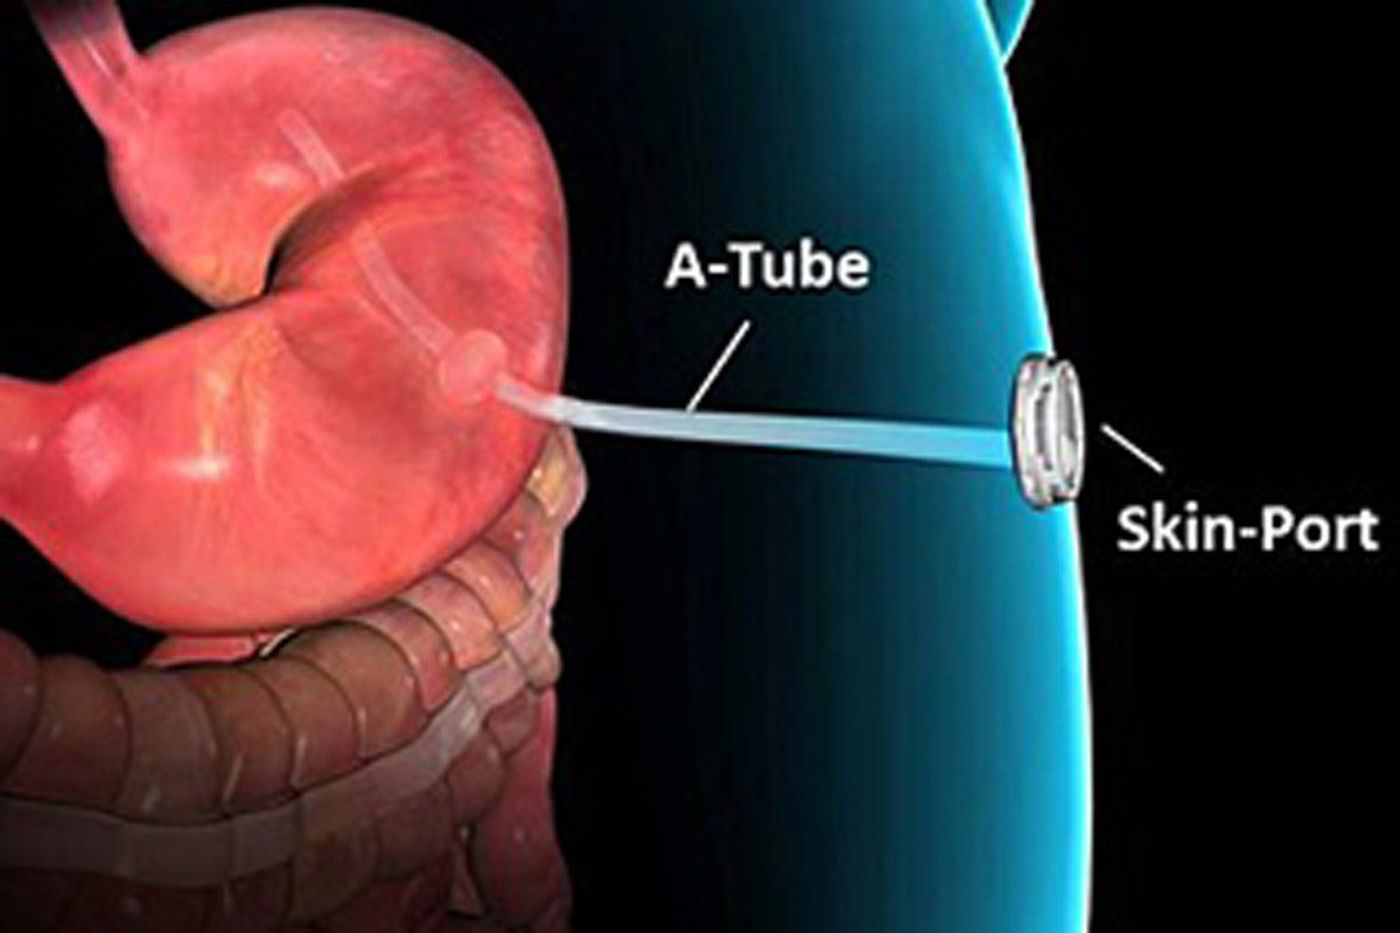 'Abdominal vomiting' device that raised eyebrows shows promising results